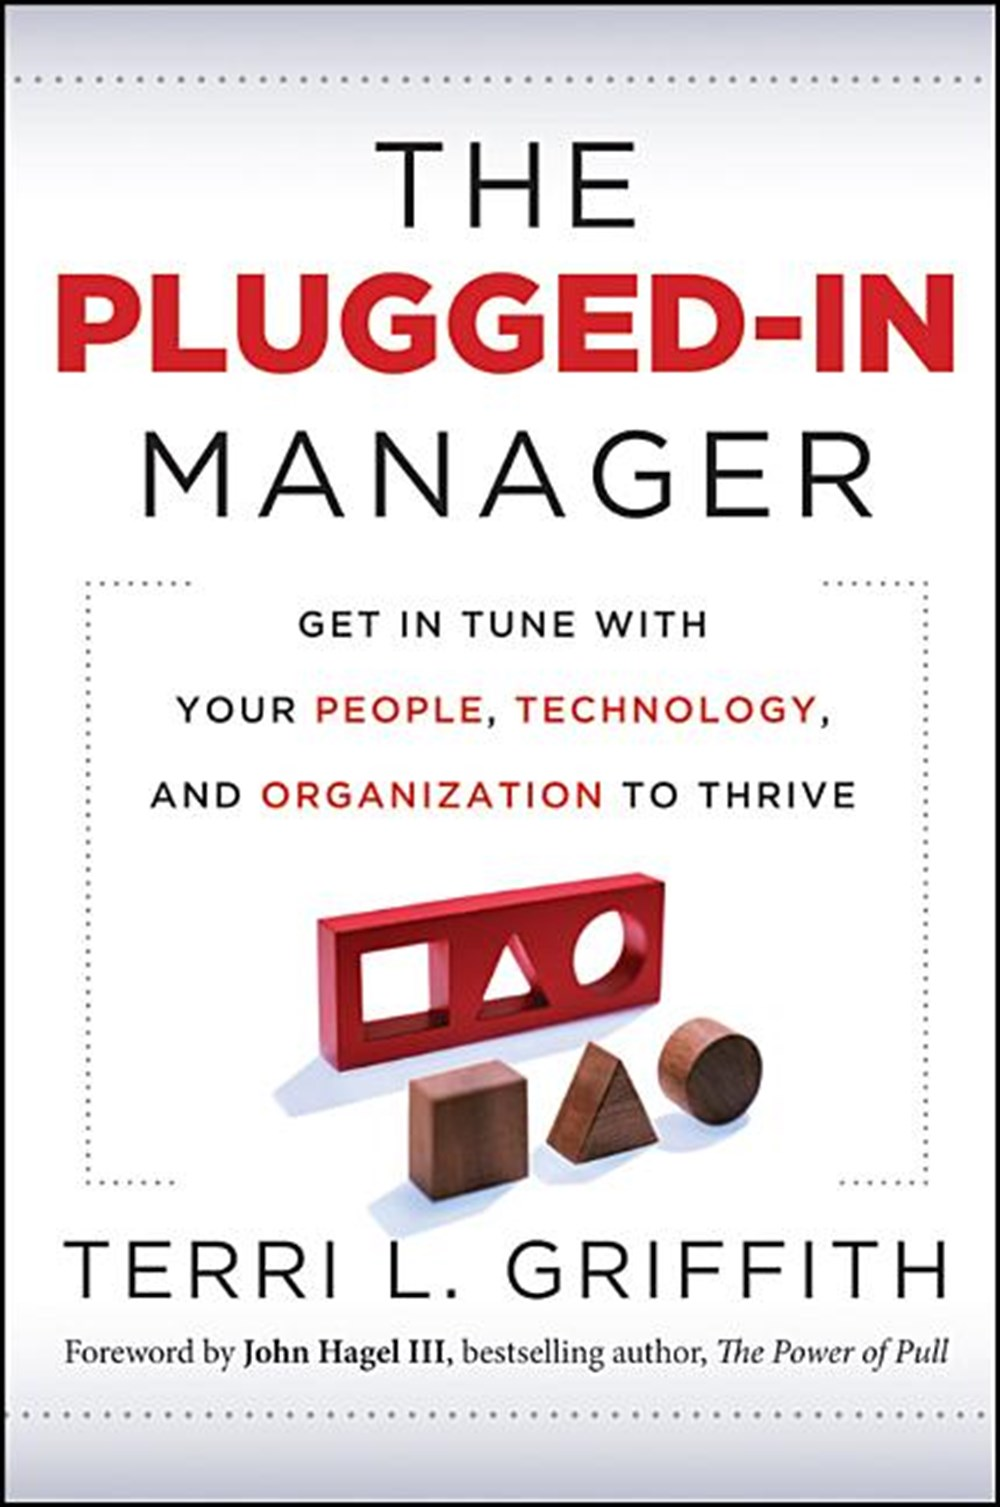 Plugged-In Manager Get in Tune with Your People, Technology, and Organization to Thrive